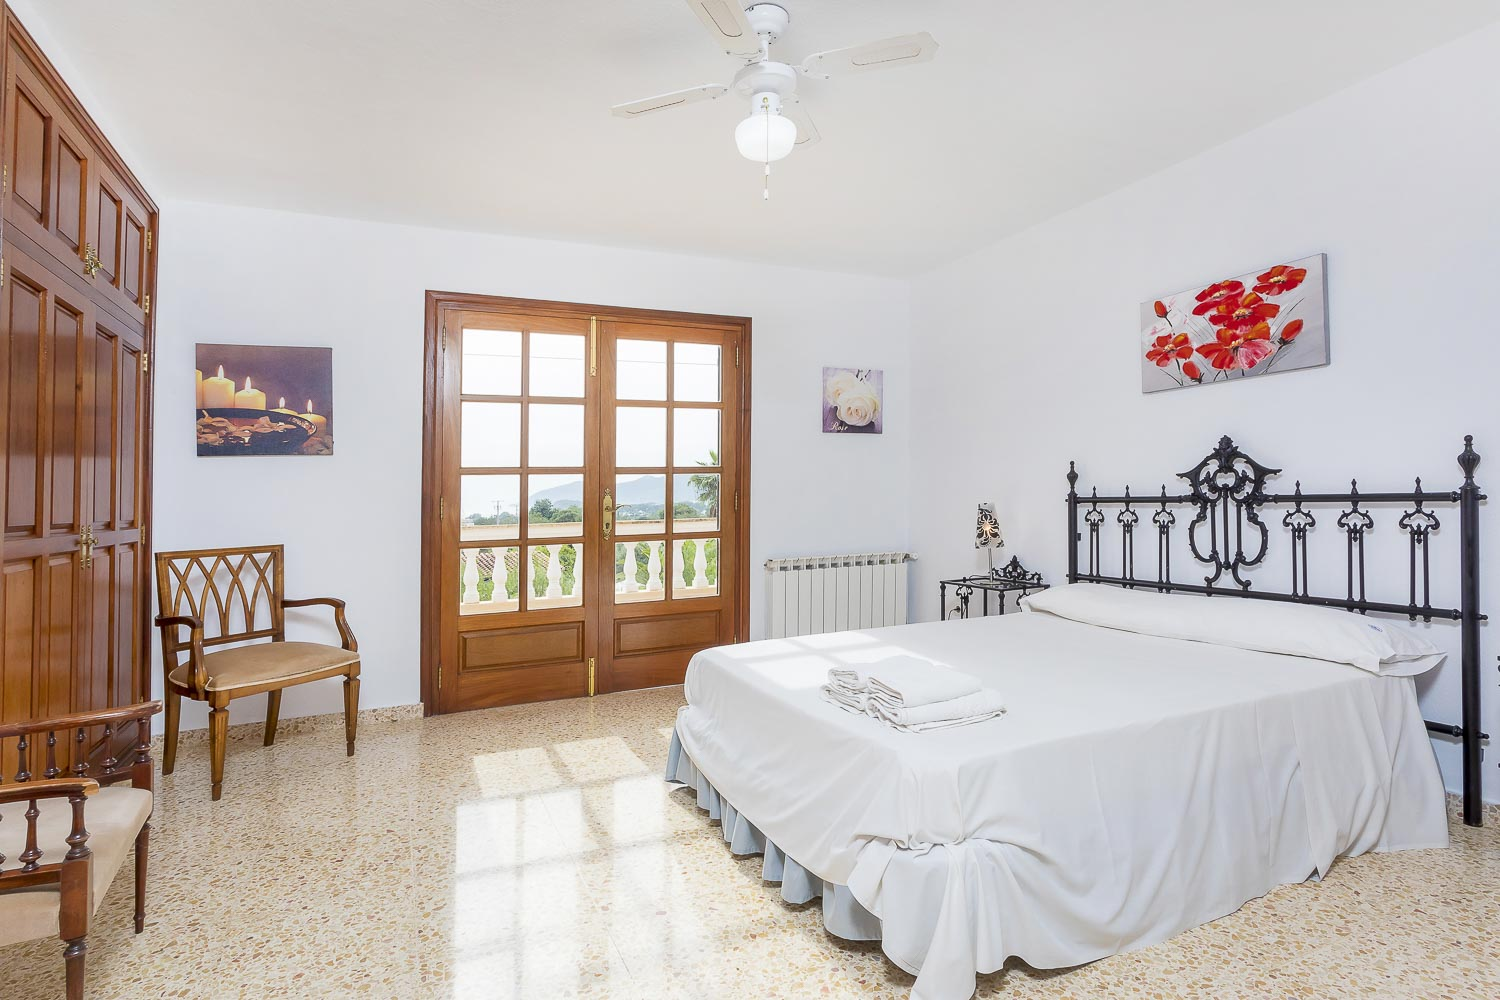 Double bed room in a rental house in Ibiza